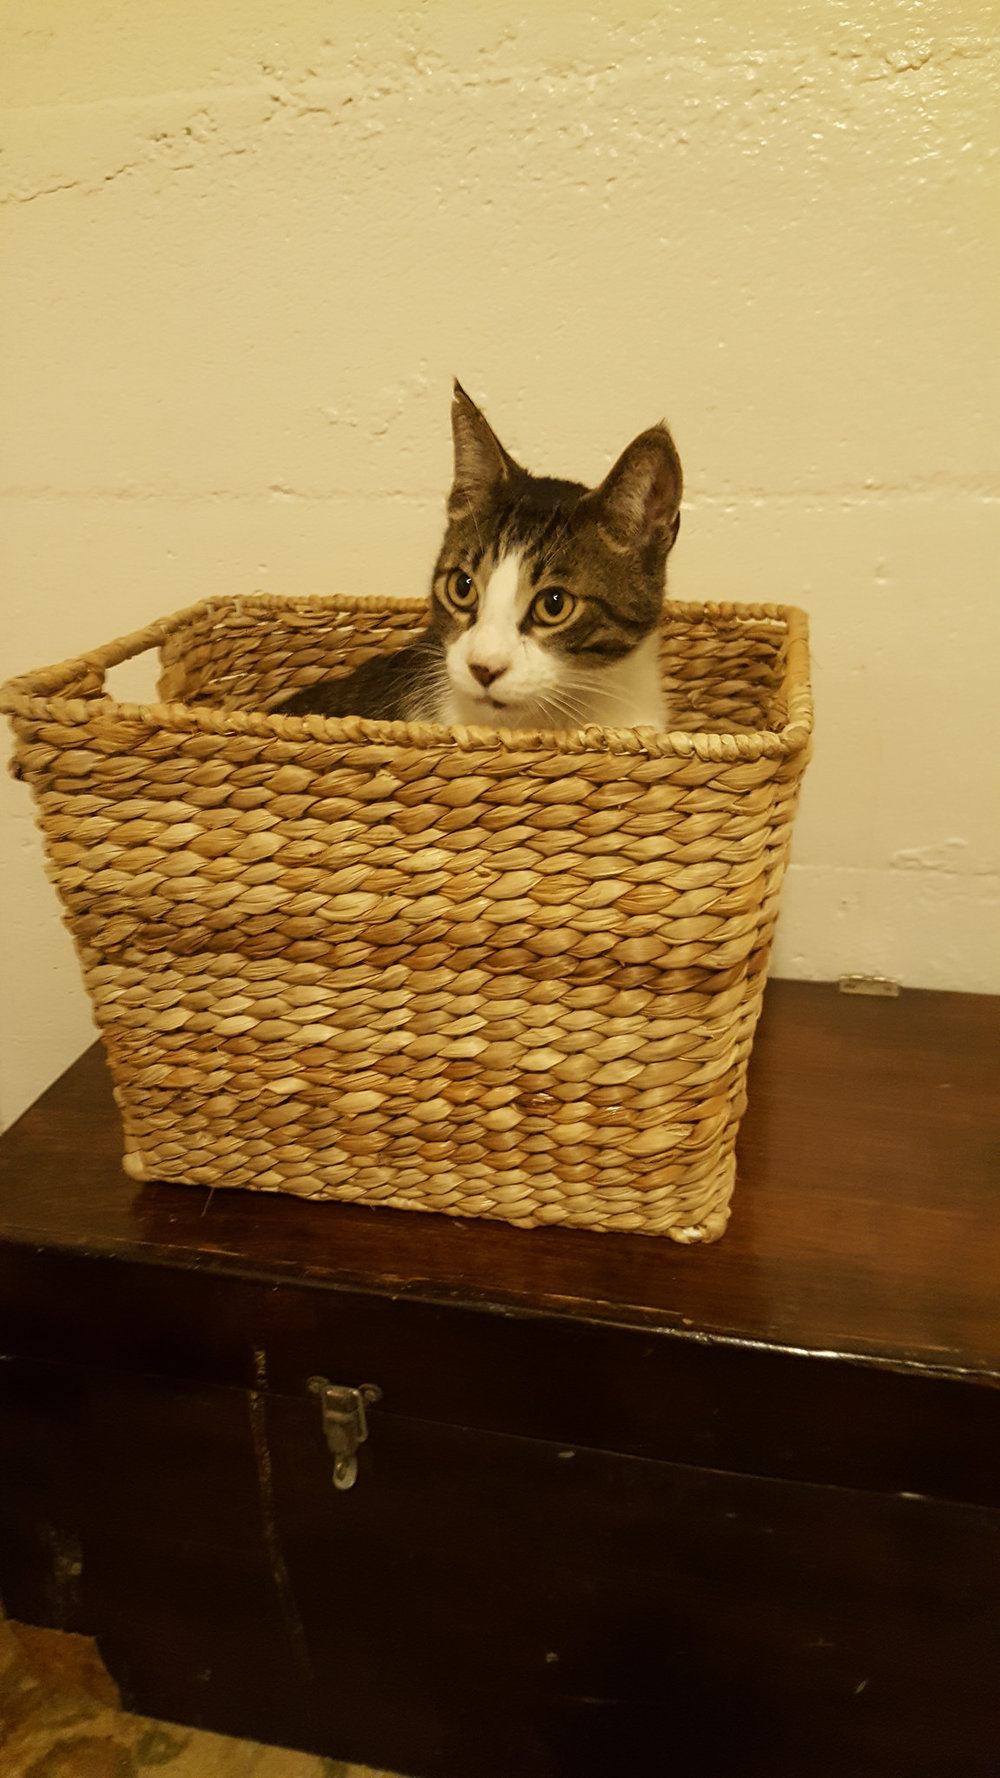 Basket case.